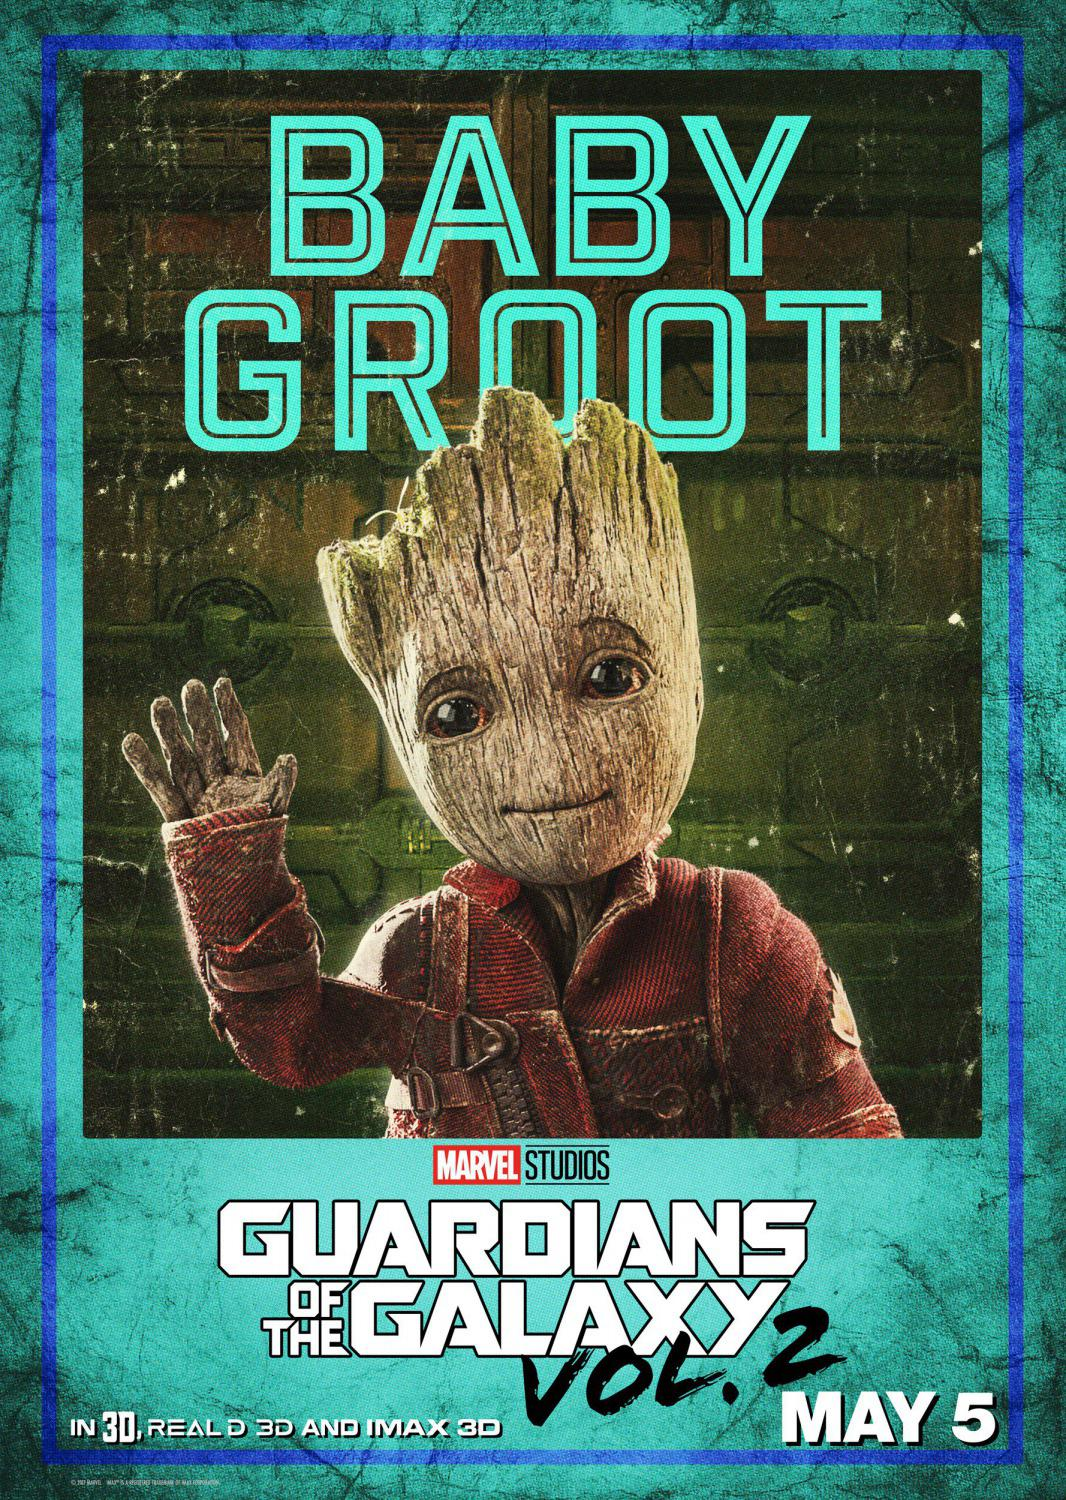 Guardians of the Galaxy vol two - Guardiani della Galassia 2 - Baby Groot